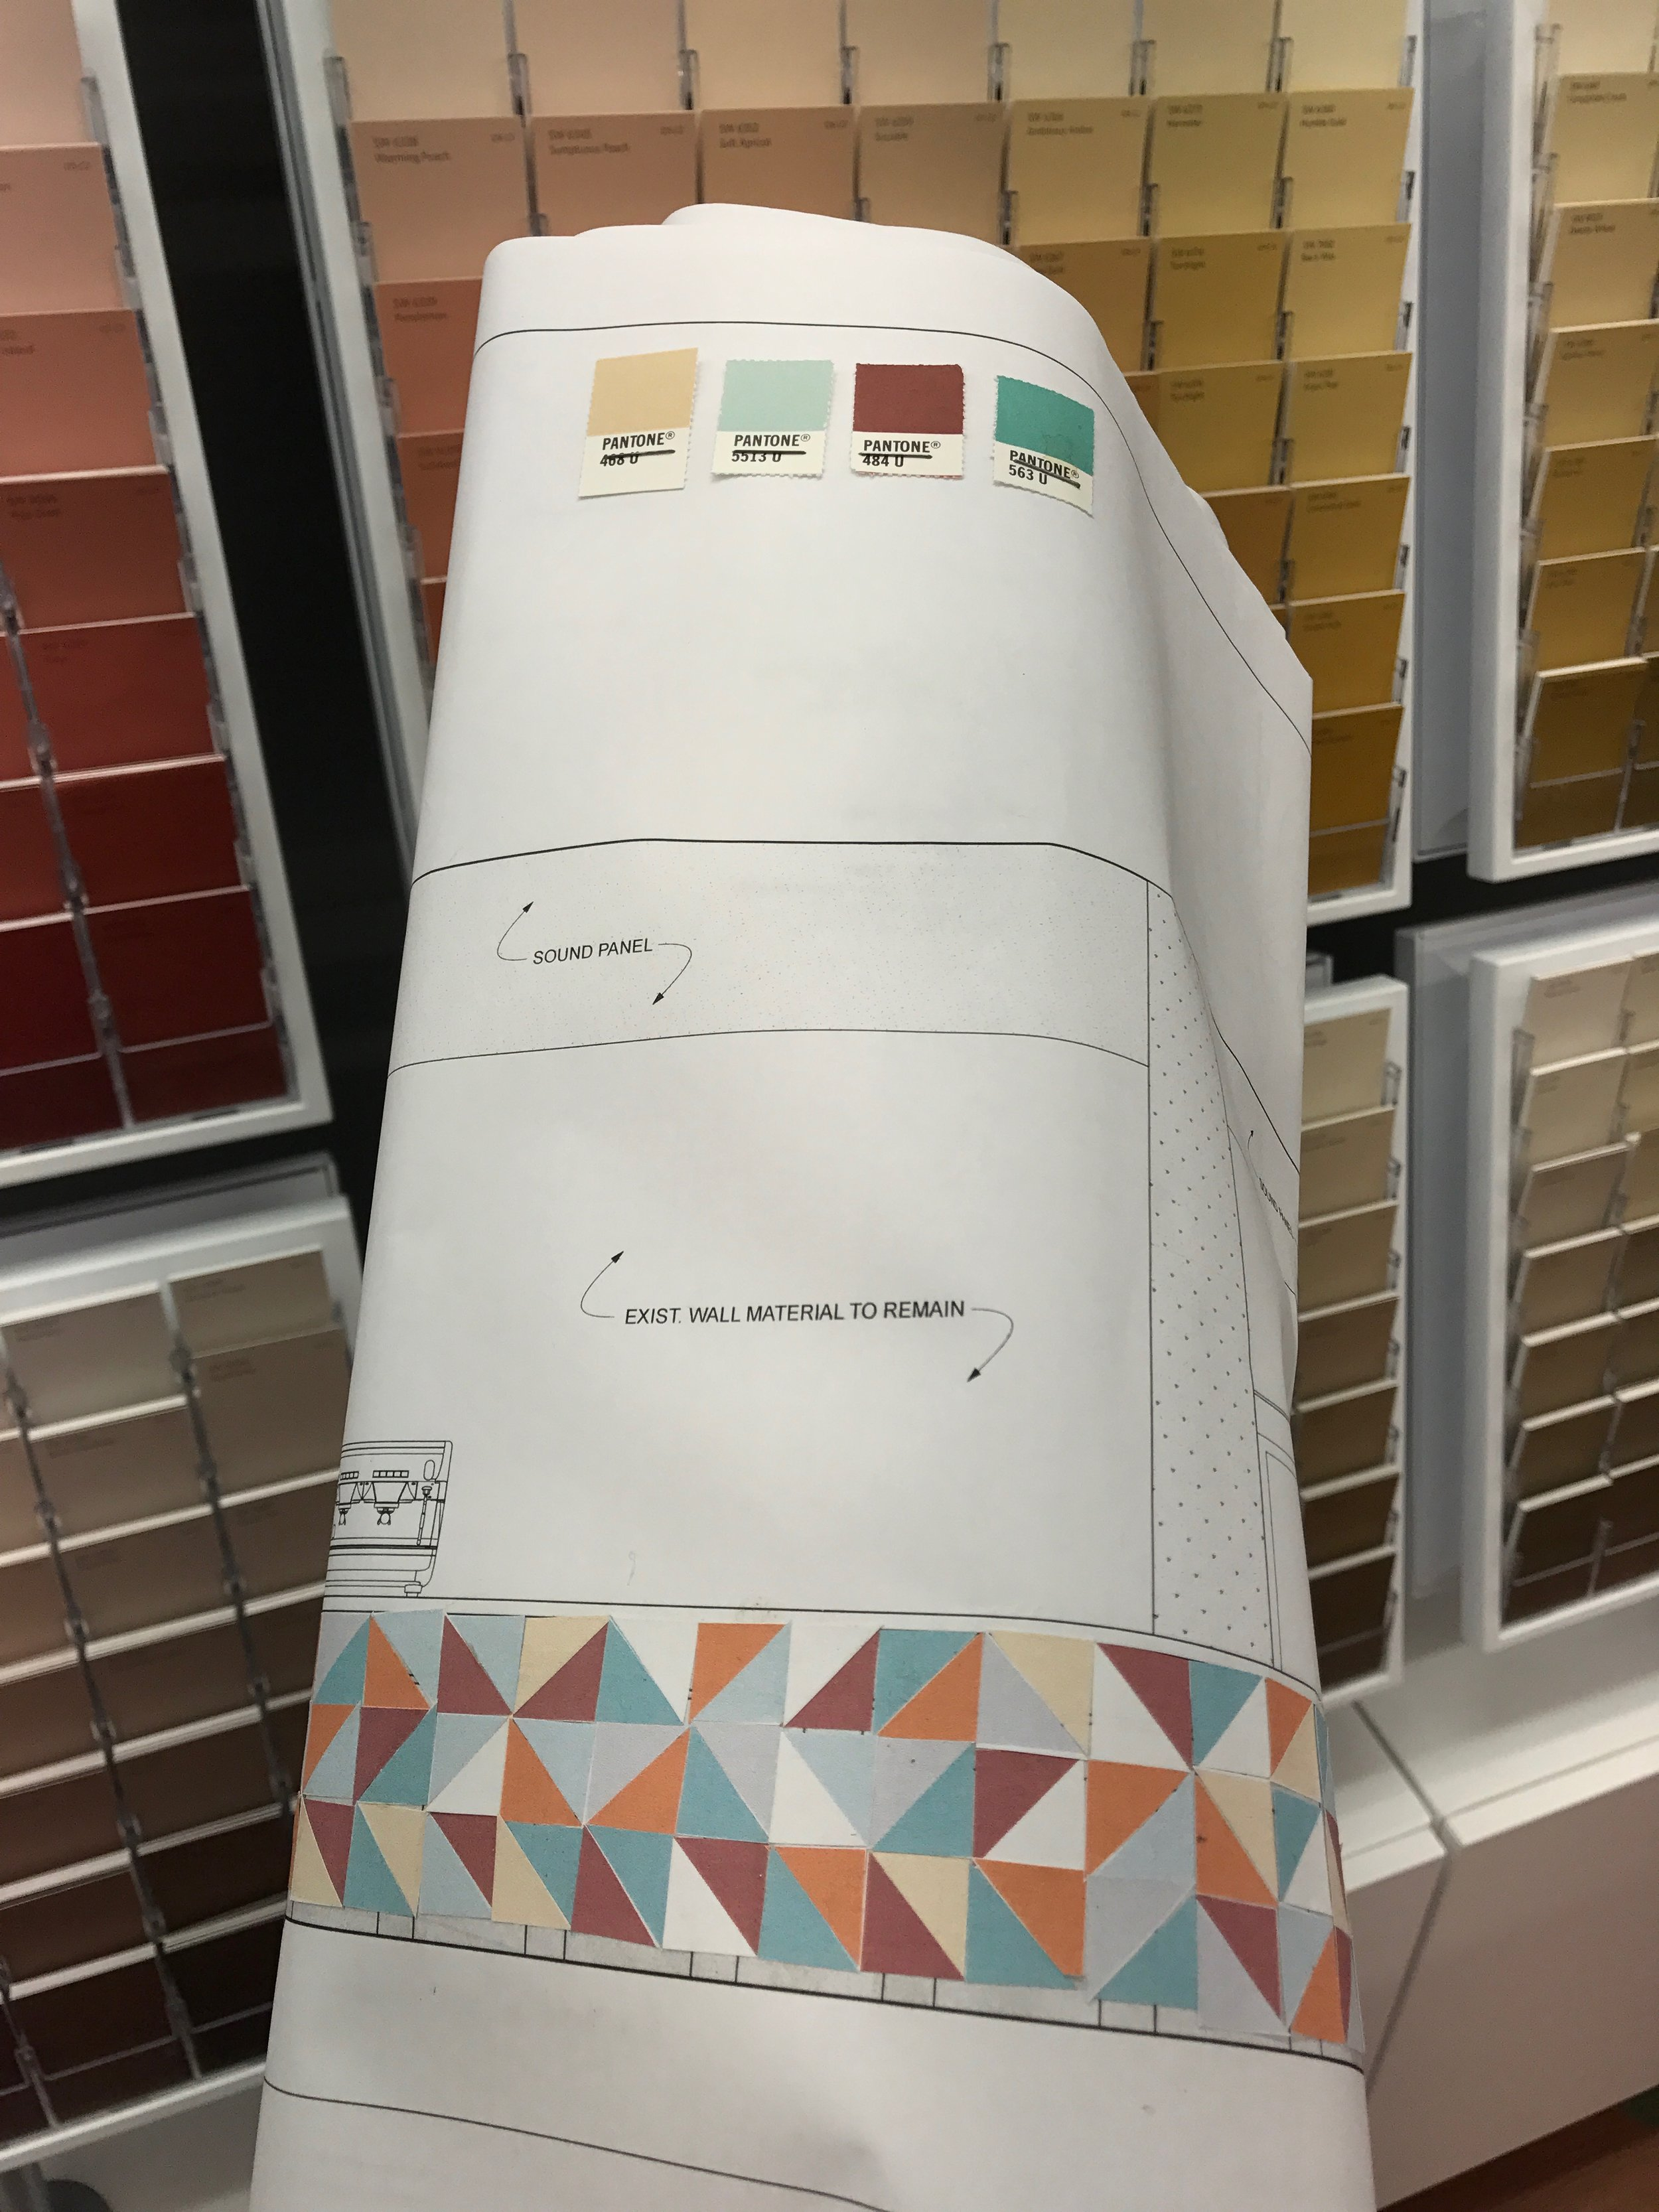 I spent so much time at the Sherwin Williams store on Centre Ave. I have an account and even bought myself one of those legit paint sample books.